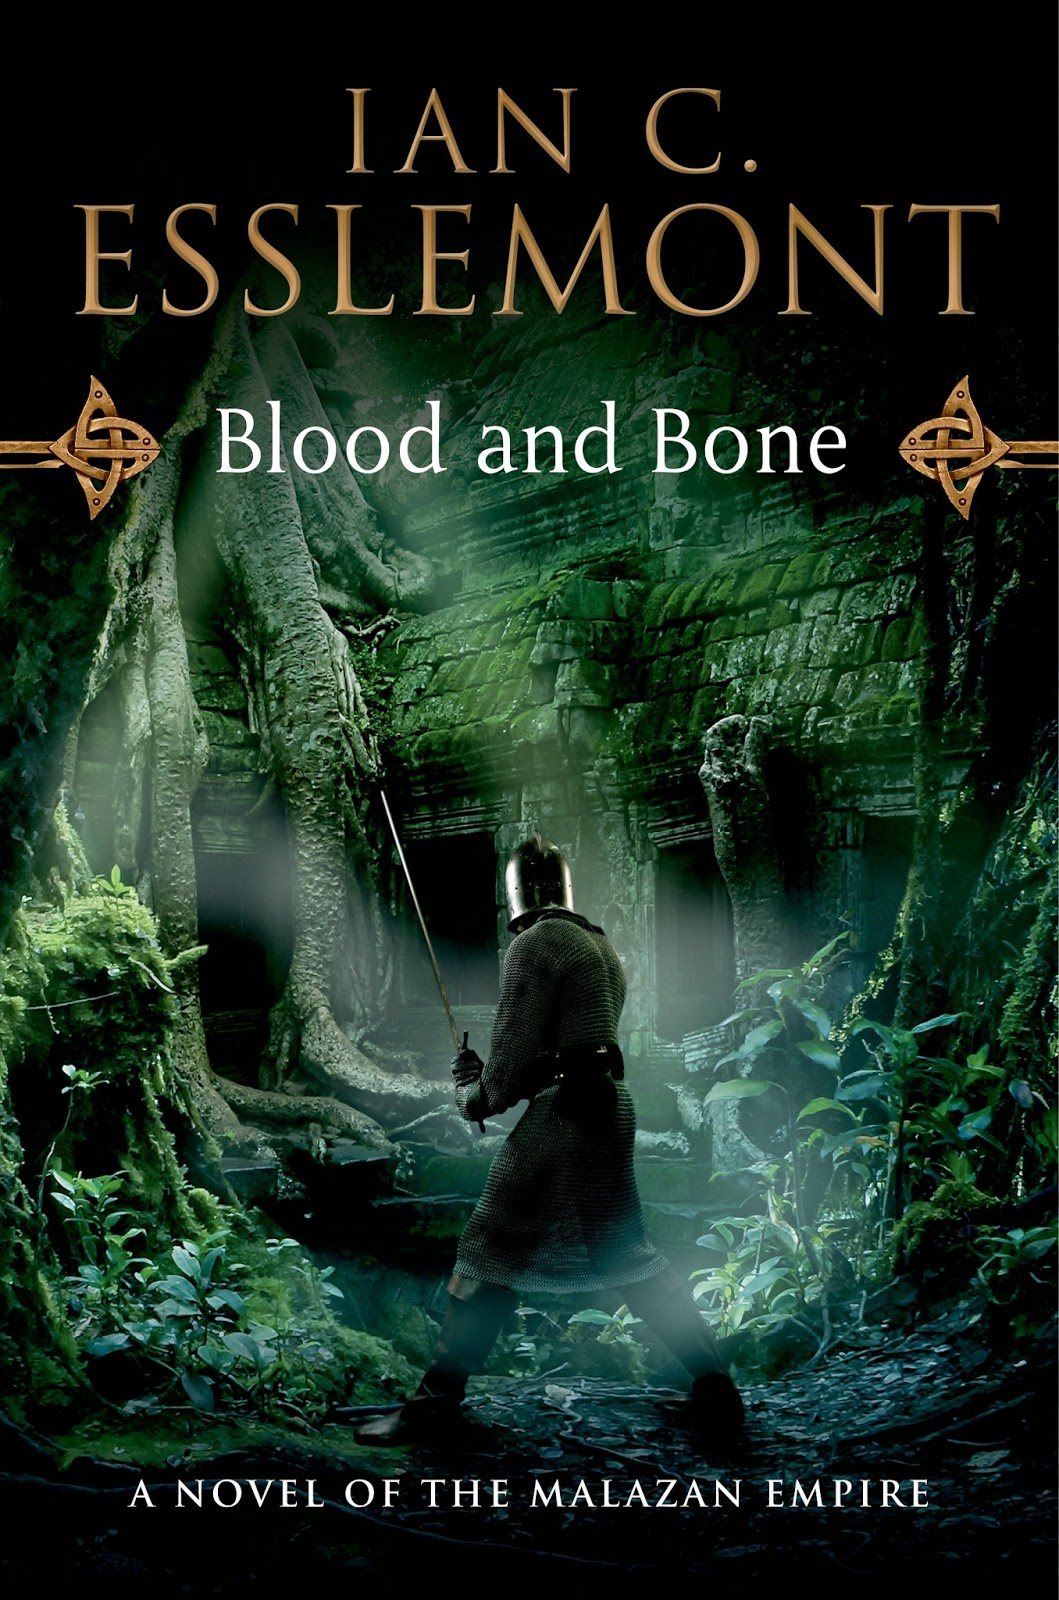 ... flock together: Microreview [book]: Blood and Bone by Ian C. Esslemont